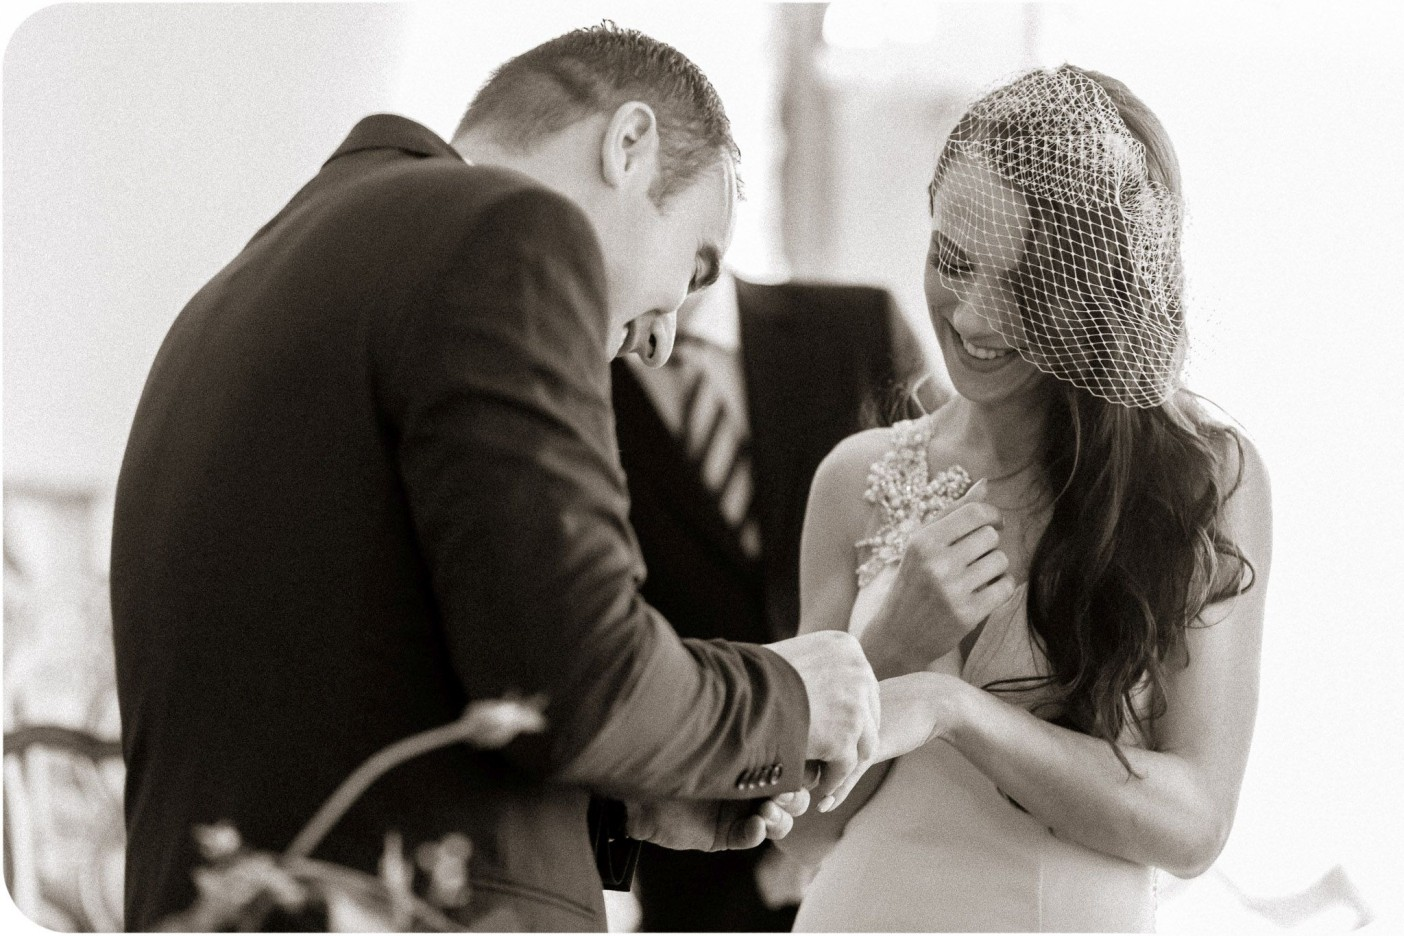 bride and groom exchanging rings during wedding photo service in Venice